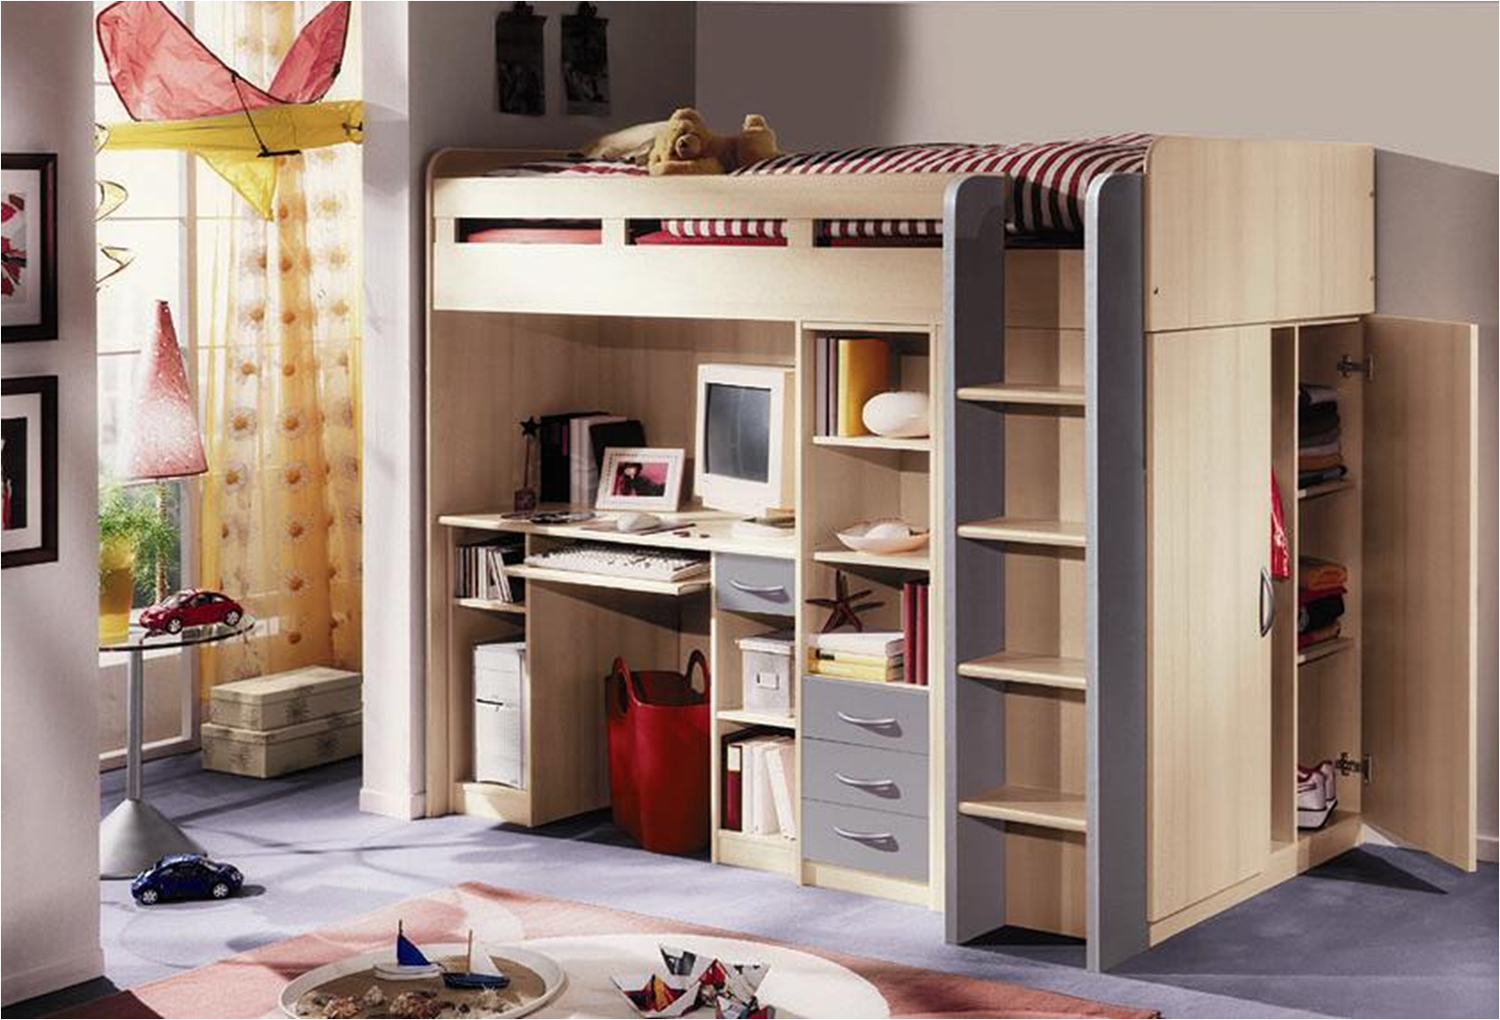 funvit ikea hochbetten f 252 28 images funvit ikea hochbetten f 252 r erwachsene regale f. Black Bedroom Furniture Sets. Home Design Ideas